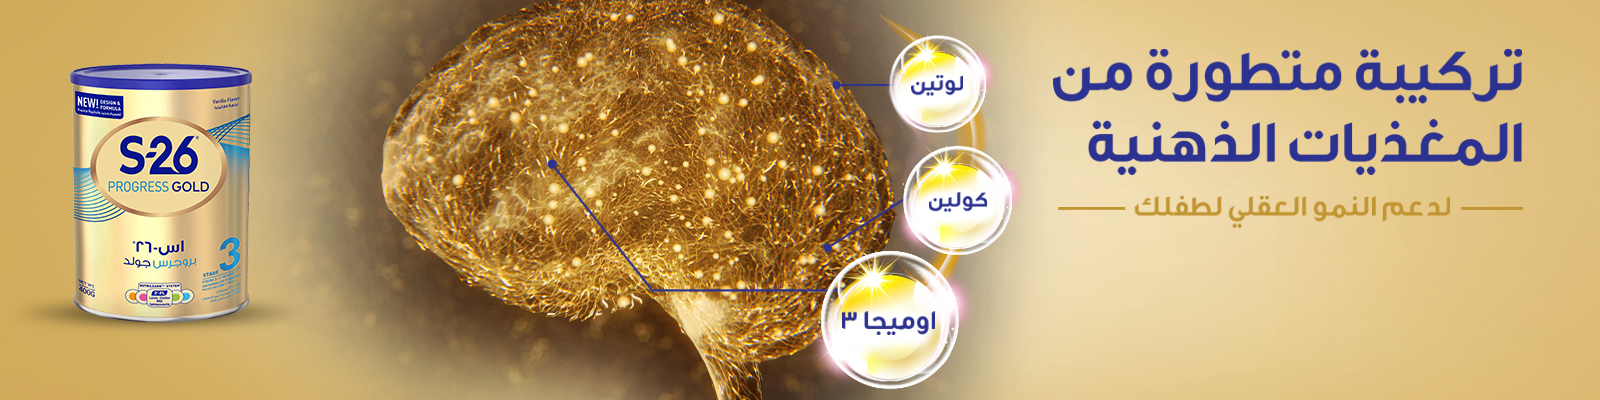 Advanced Formulation Of Brain Nutrients - S-26 Progress Gold Milk Can